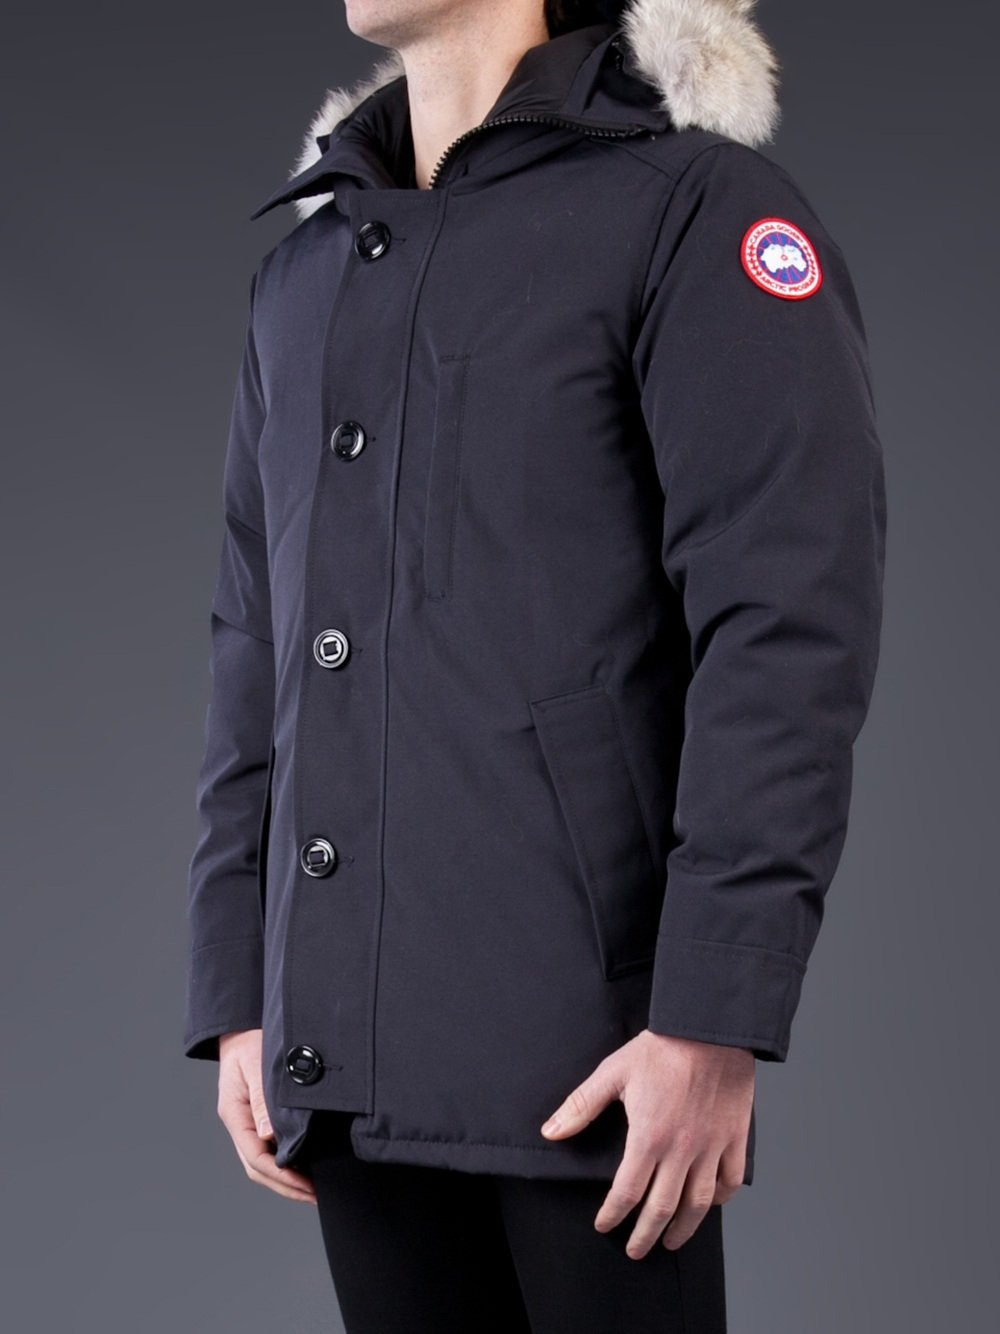 Canada Goose Chateau Parka in Blue for Men - Lyst 851a7111cd84